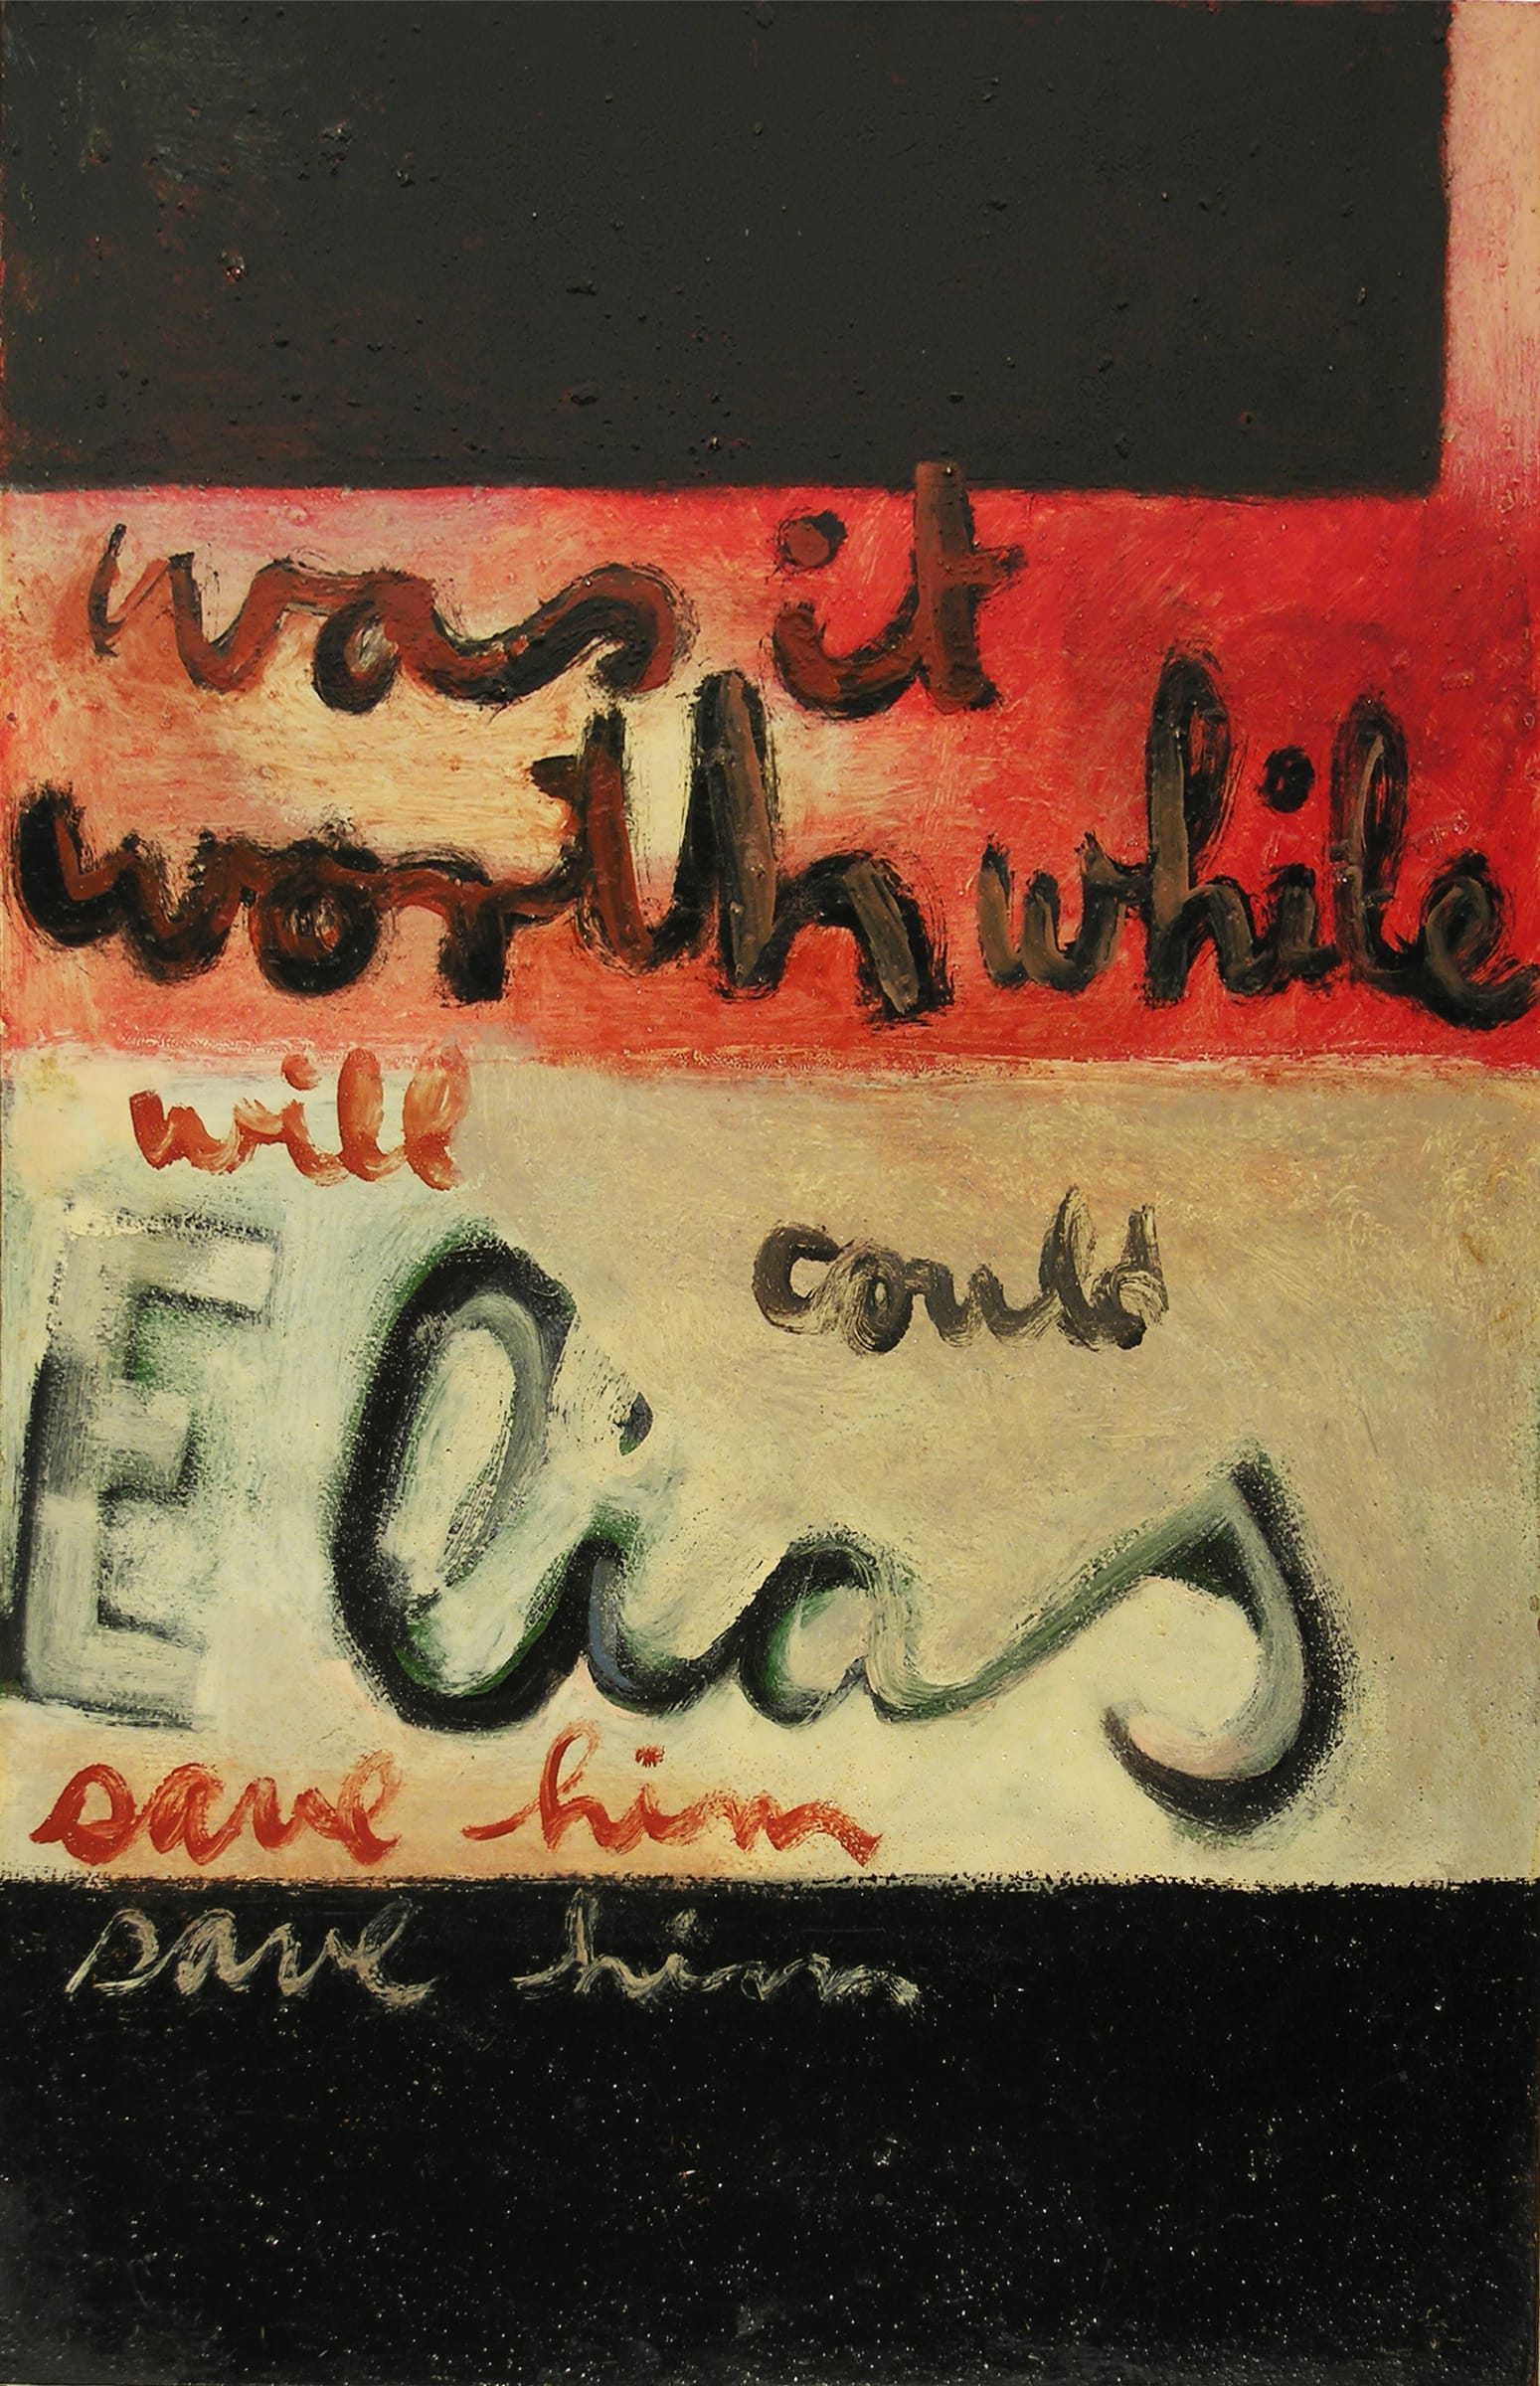 "<span class=""link fancybox-details-link""><a href=""/artists/89-colin-mccahon/works/2863-colin-mccahon-was-it-worth-while-elias-series-1959/"">View Detail Page</a></span><div class=""artist""><strong>Colin McCAHON</strong></div> <div class=""title""><em>Was It Worth While (Elias Series)</em>, 1959</div> <div class=""signed_and_dated"">Signed, dated and titled verso</div> <div class=""medium"">Enamel on hardboard</div> <div class=""dimensions"">26.5 x 17.3 in<br />67.2 x 44 cm</div>"